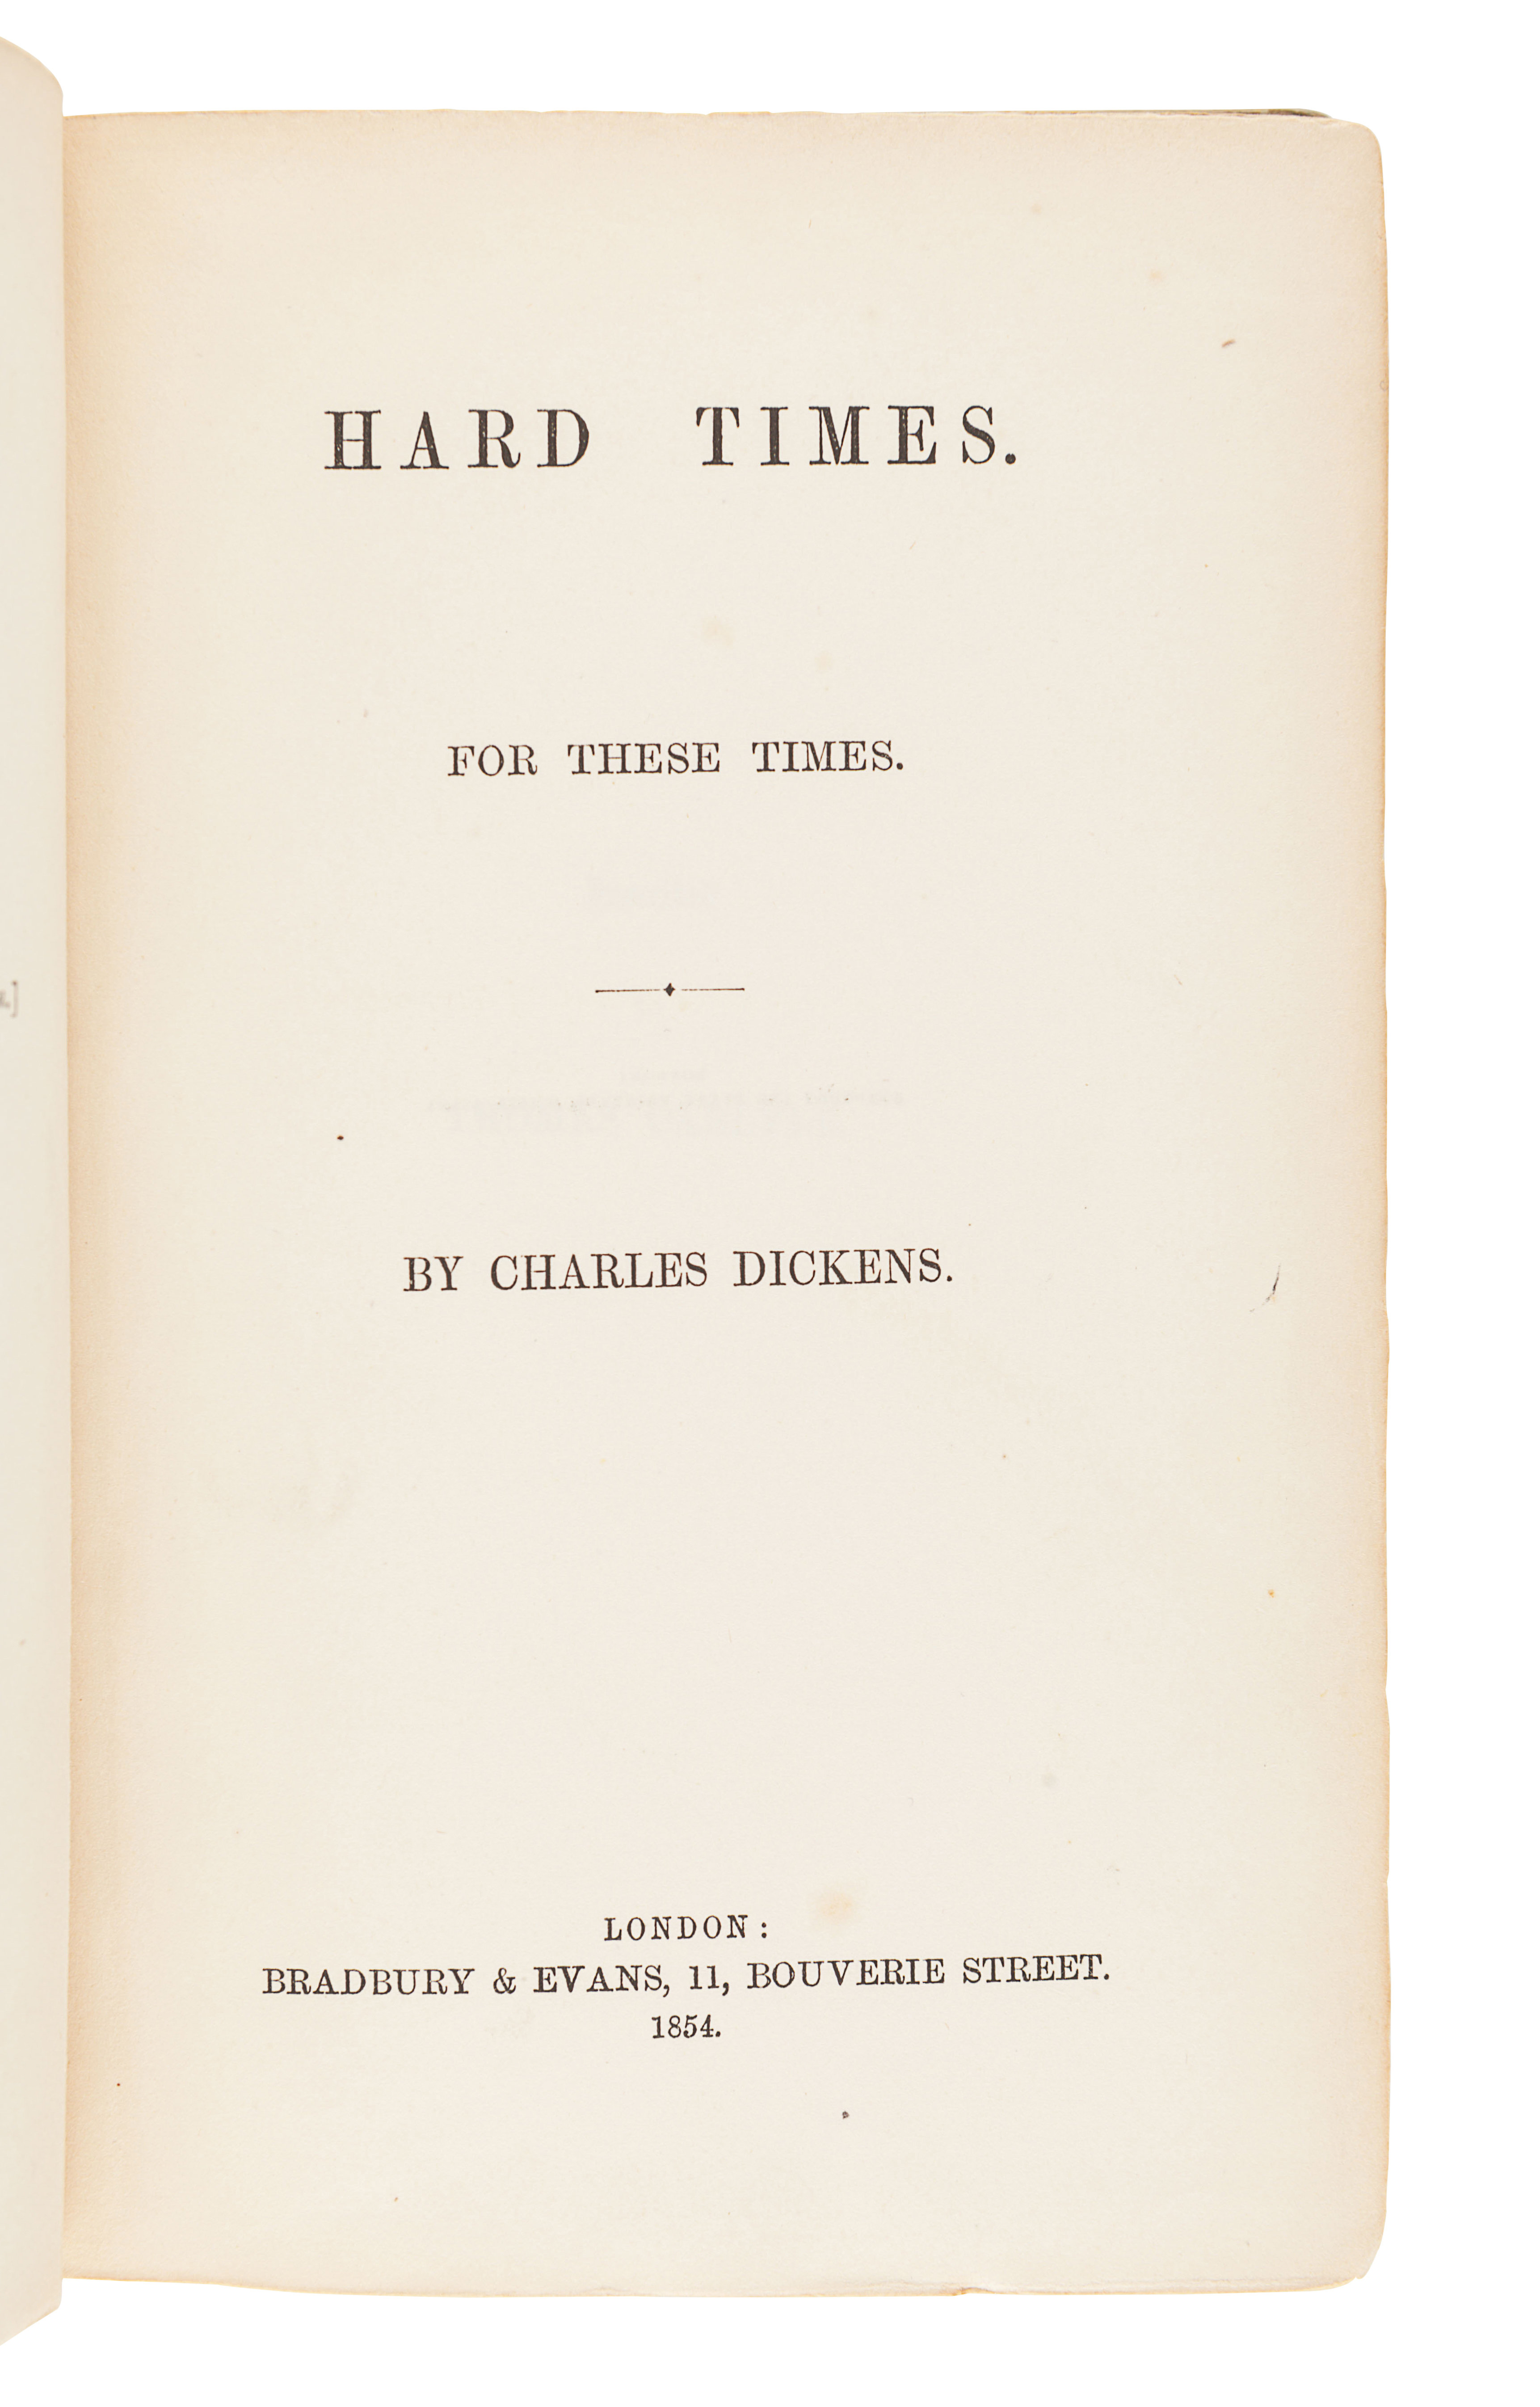 DICKENS, Charles (1812-1870). Hard Times. For These Times. London: Bradbury & Evans, 1854.